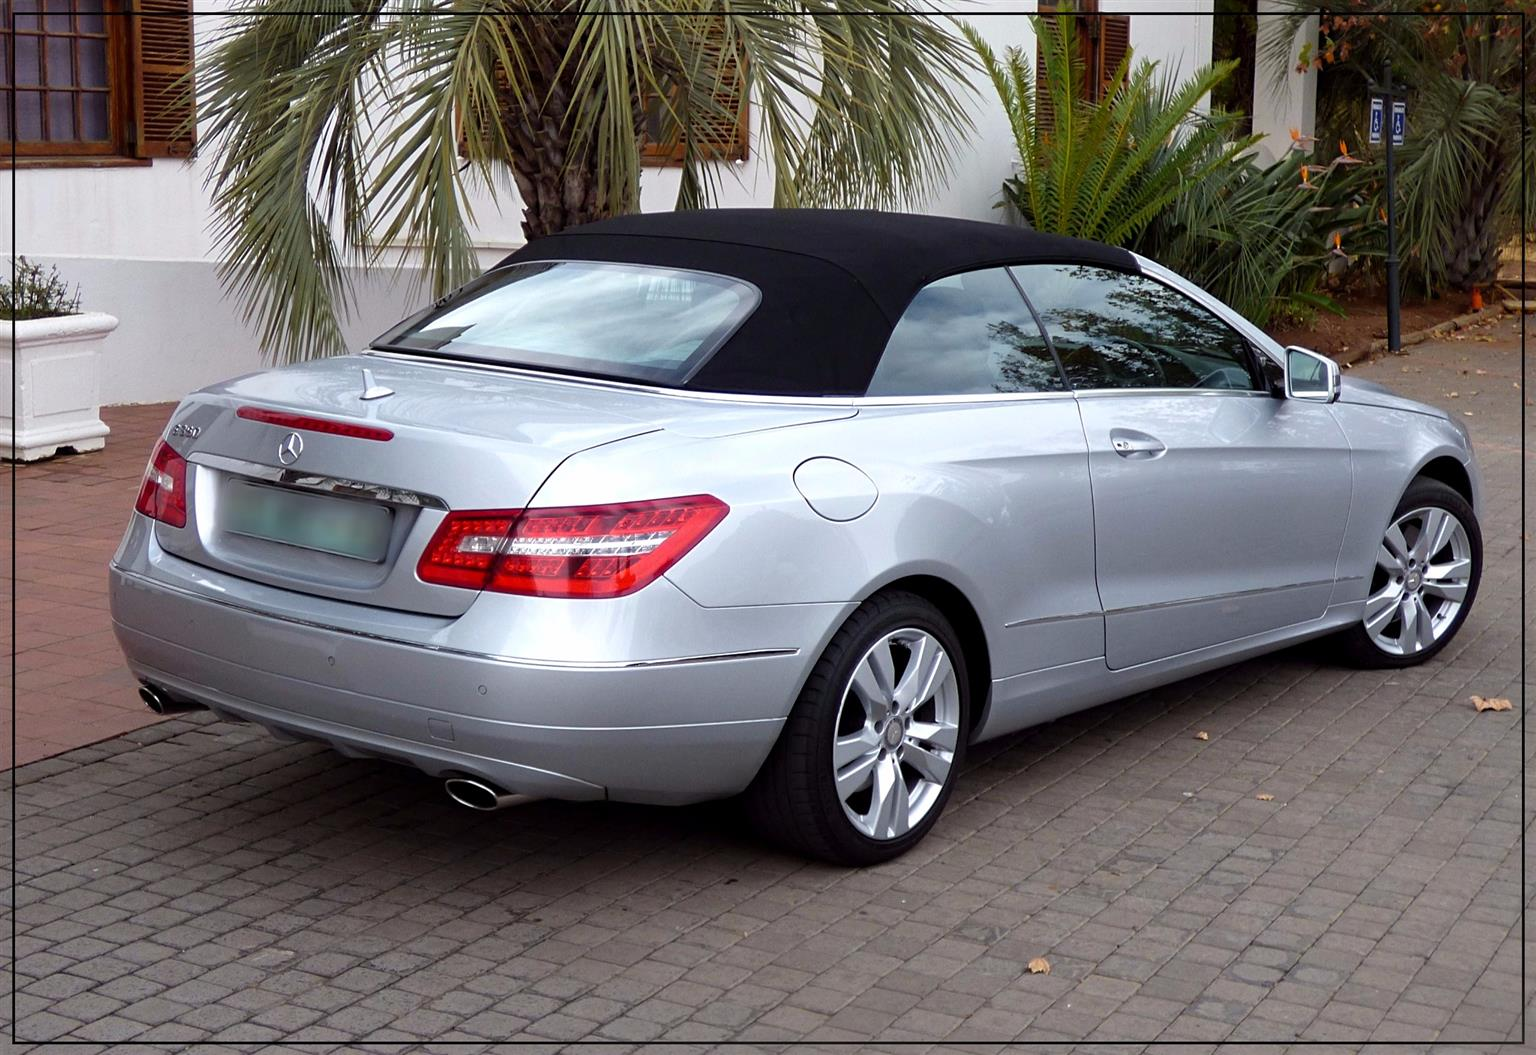 2010 mercedes benz e class e350 cabriolet elegance junk mail for 2010 mercedes benz e350 convertible for sale